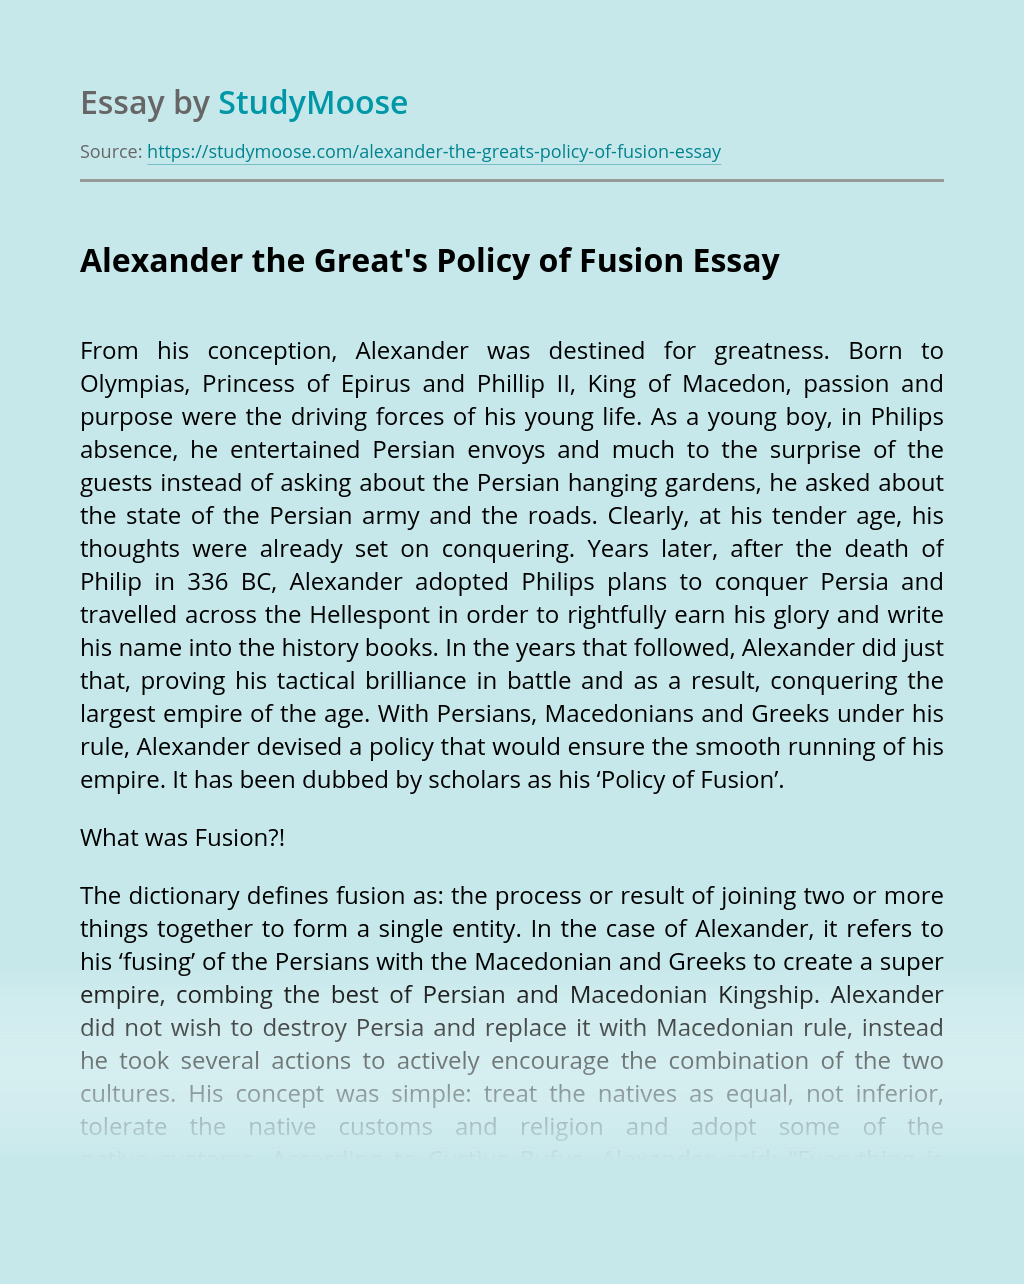 Alexander the Great's Policy of Fusion